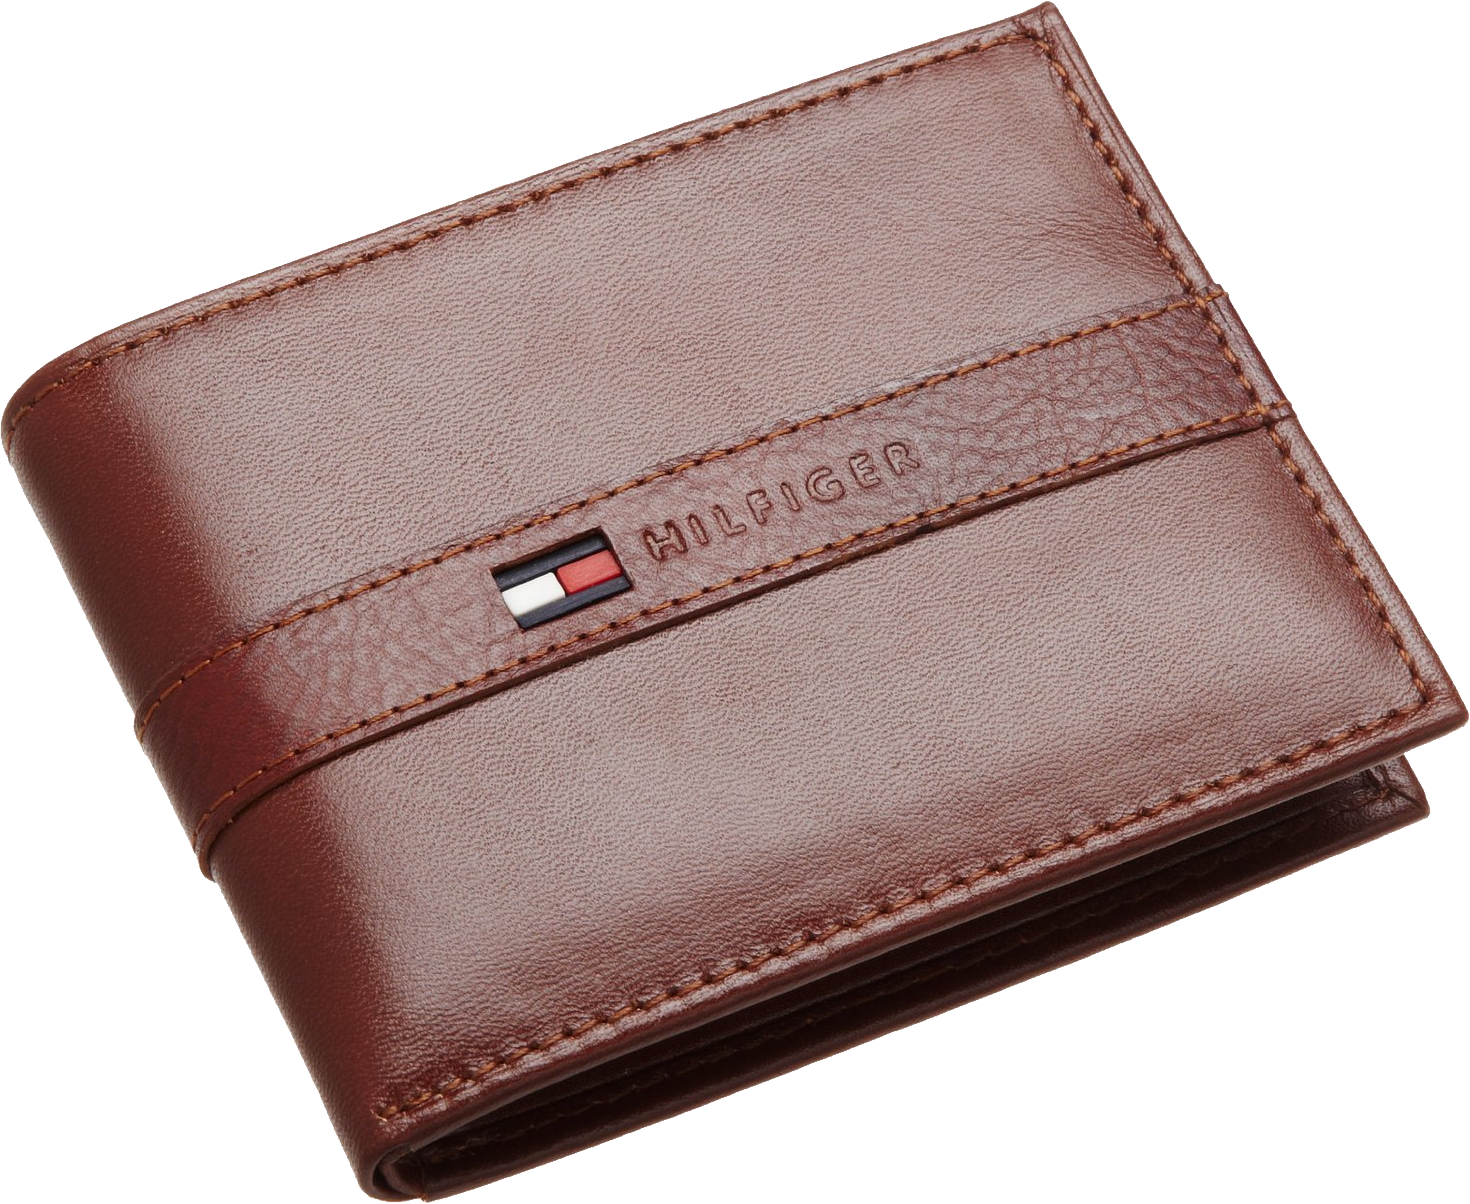 Wallet image png. Wallets images free download